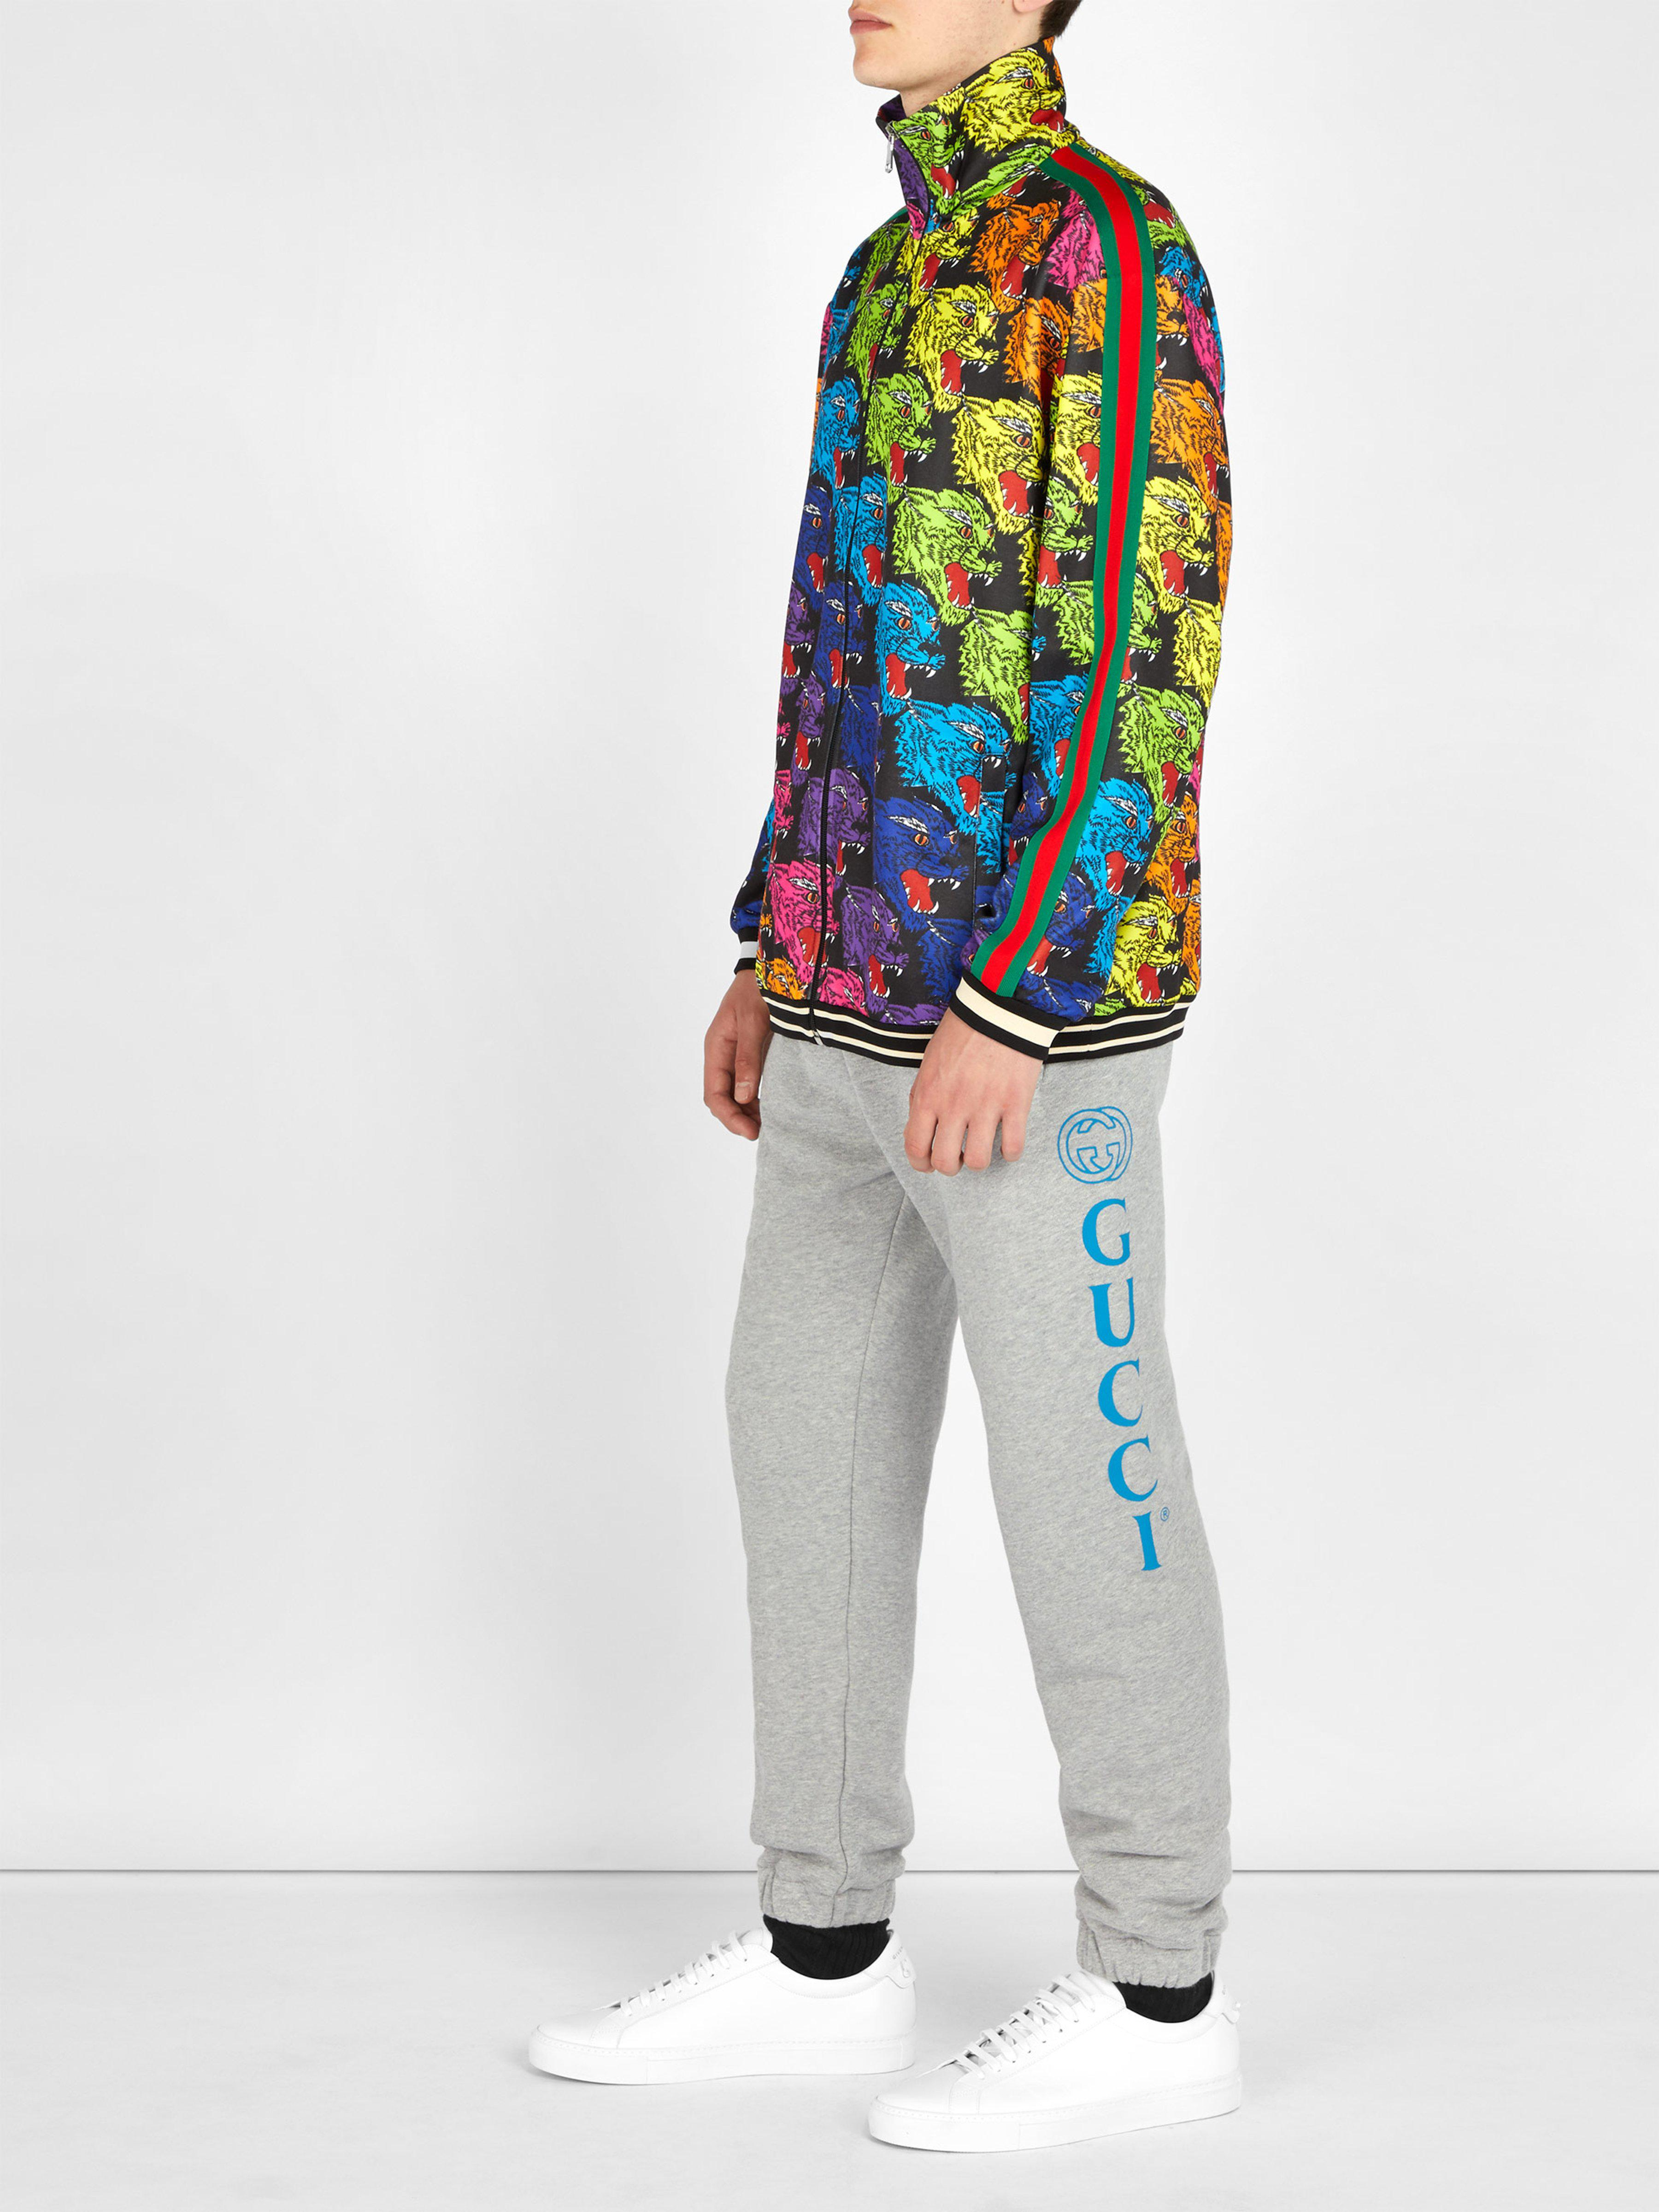 8ccce97edd8 Gucci Angry Tiger Printed Track Top for Men - Lyst